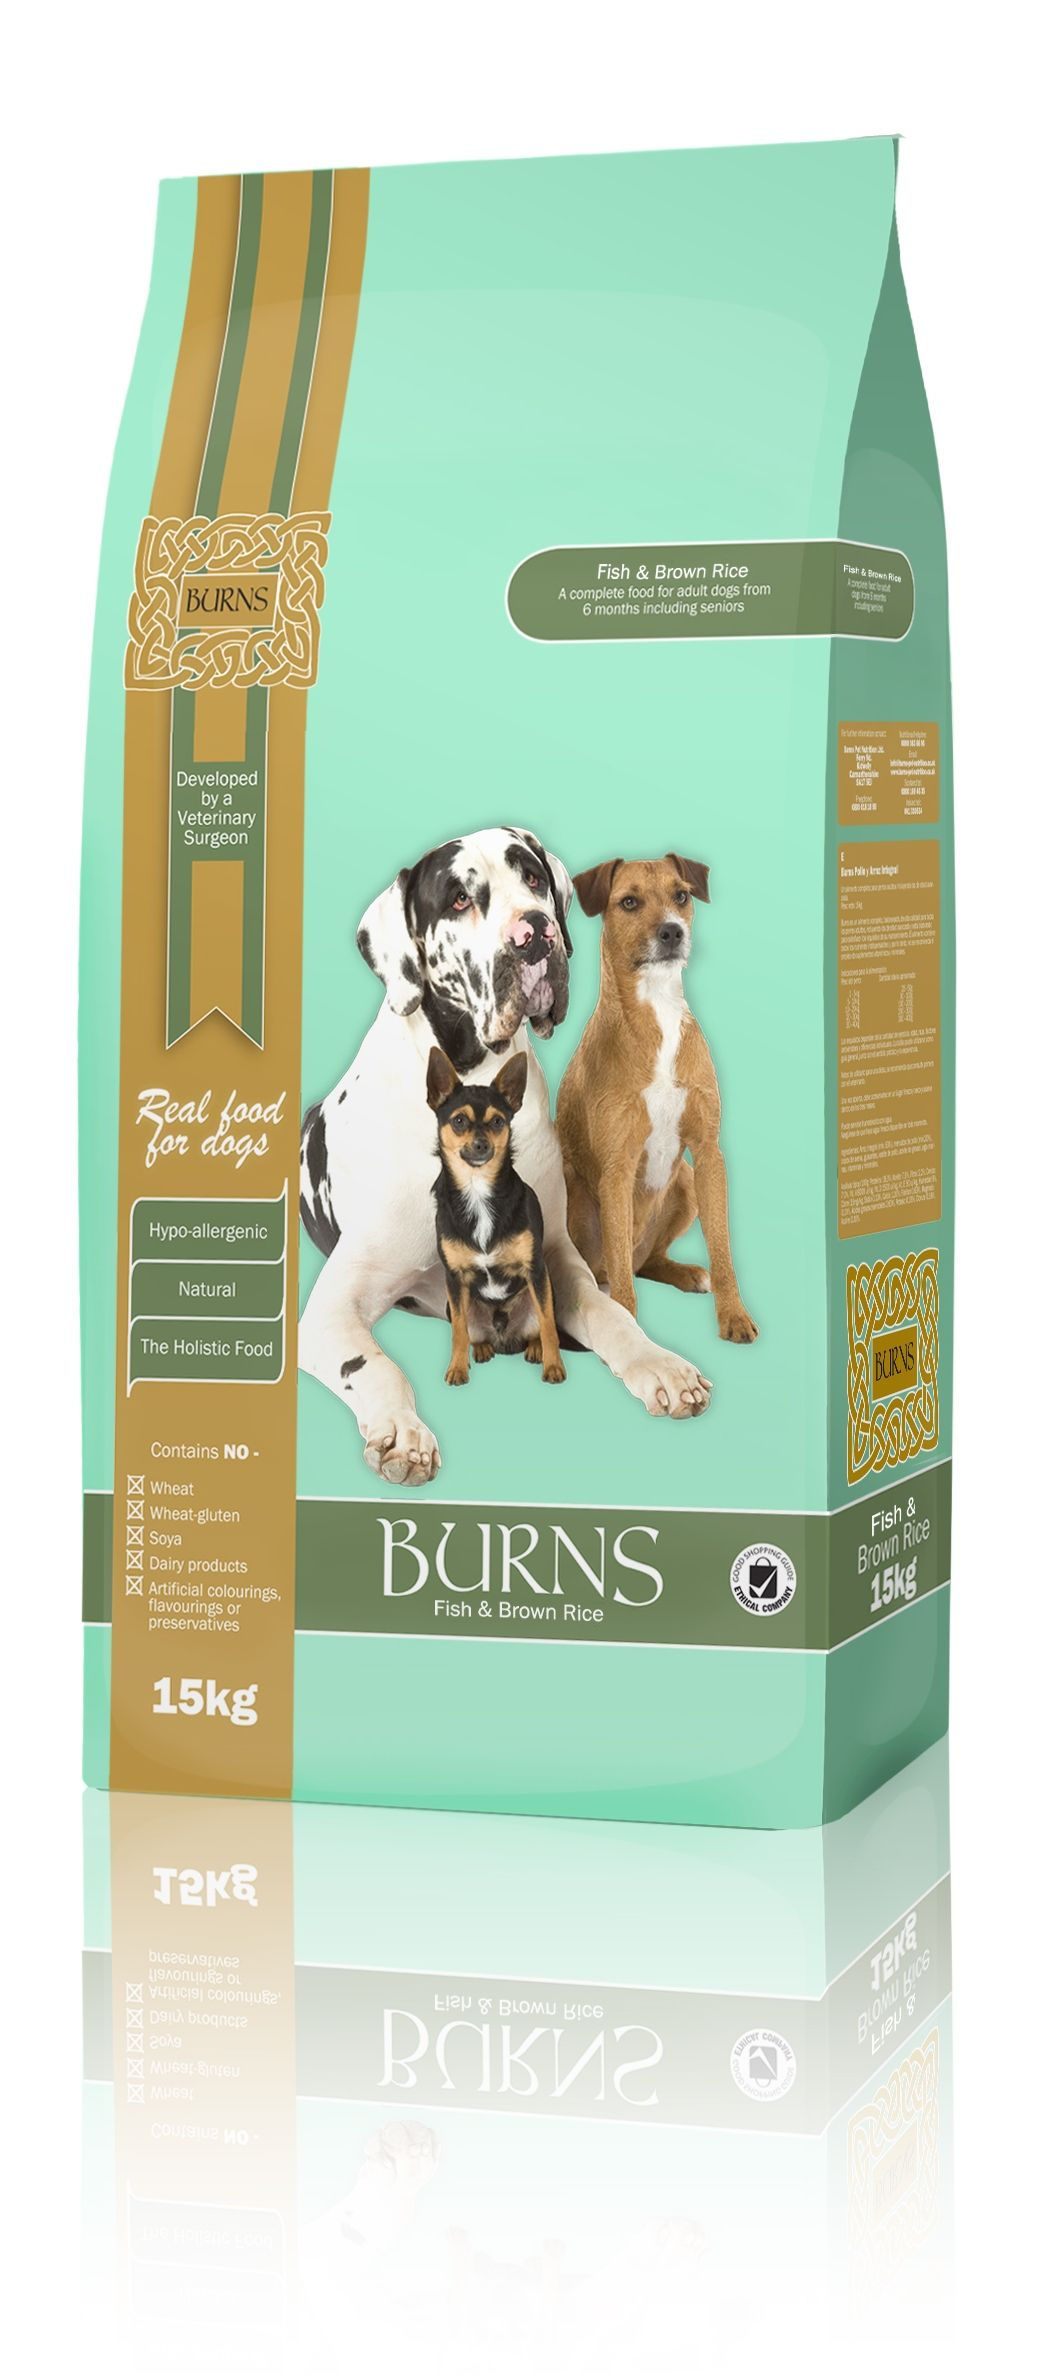 Burns Fish Brown Rice Dog Food That We Stock Dog Food